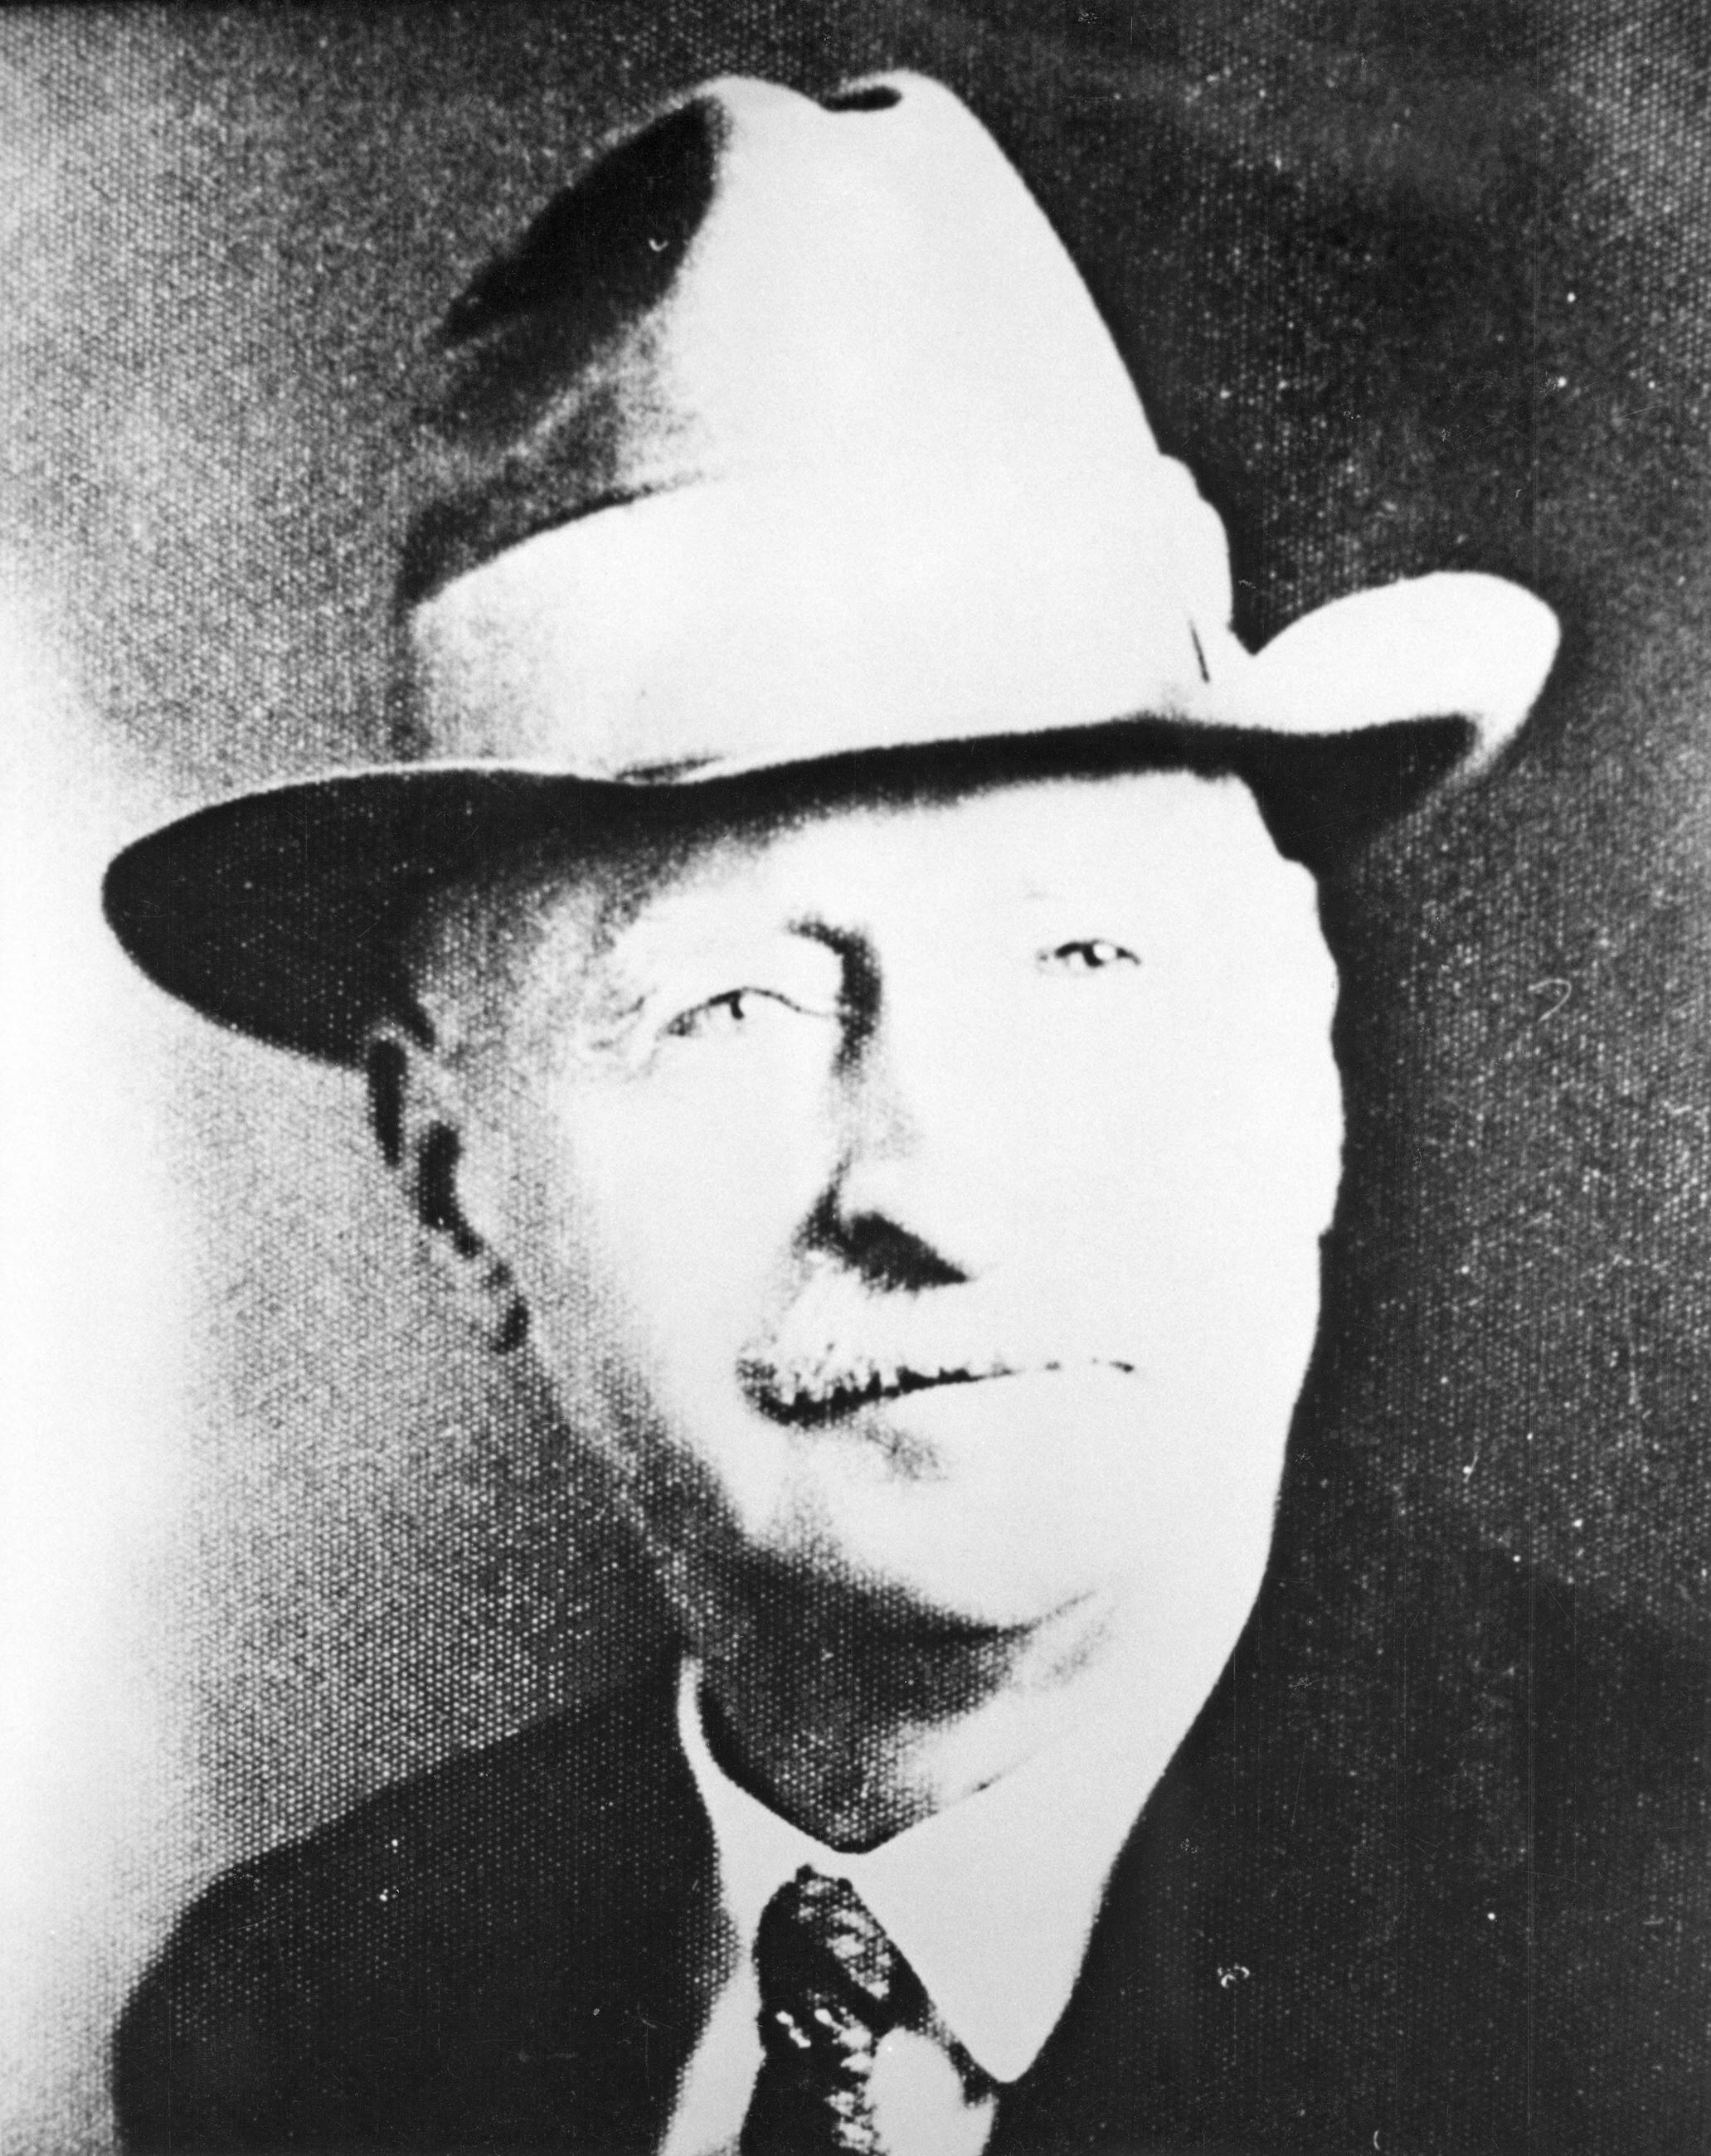 13. Sheriff Thomas Mack 1914-25